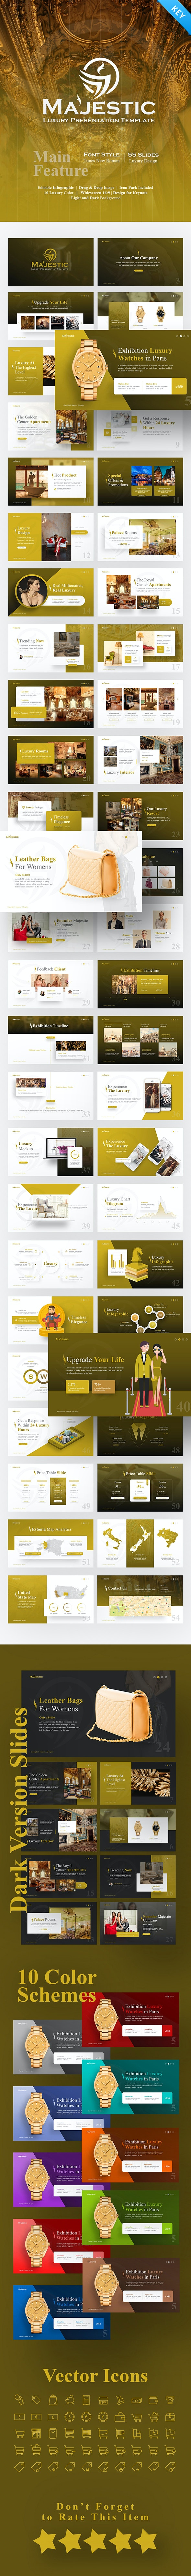 Majestic Luxury Keynote Template - Business Keynote Templates